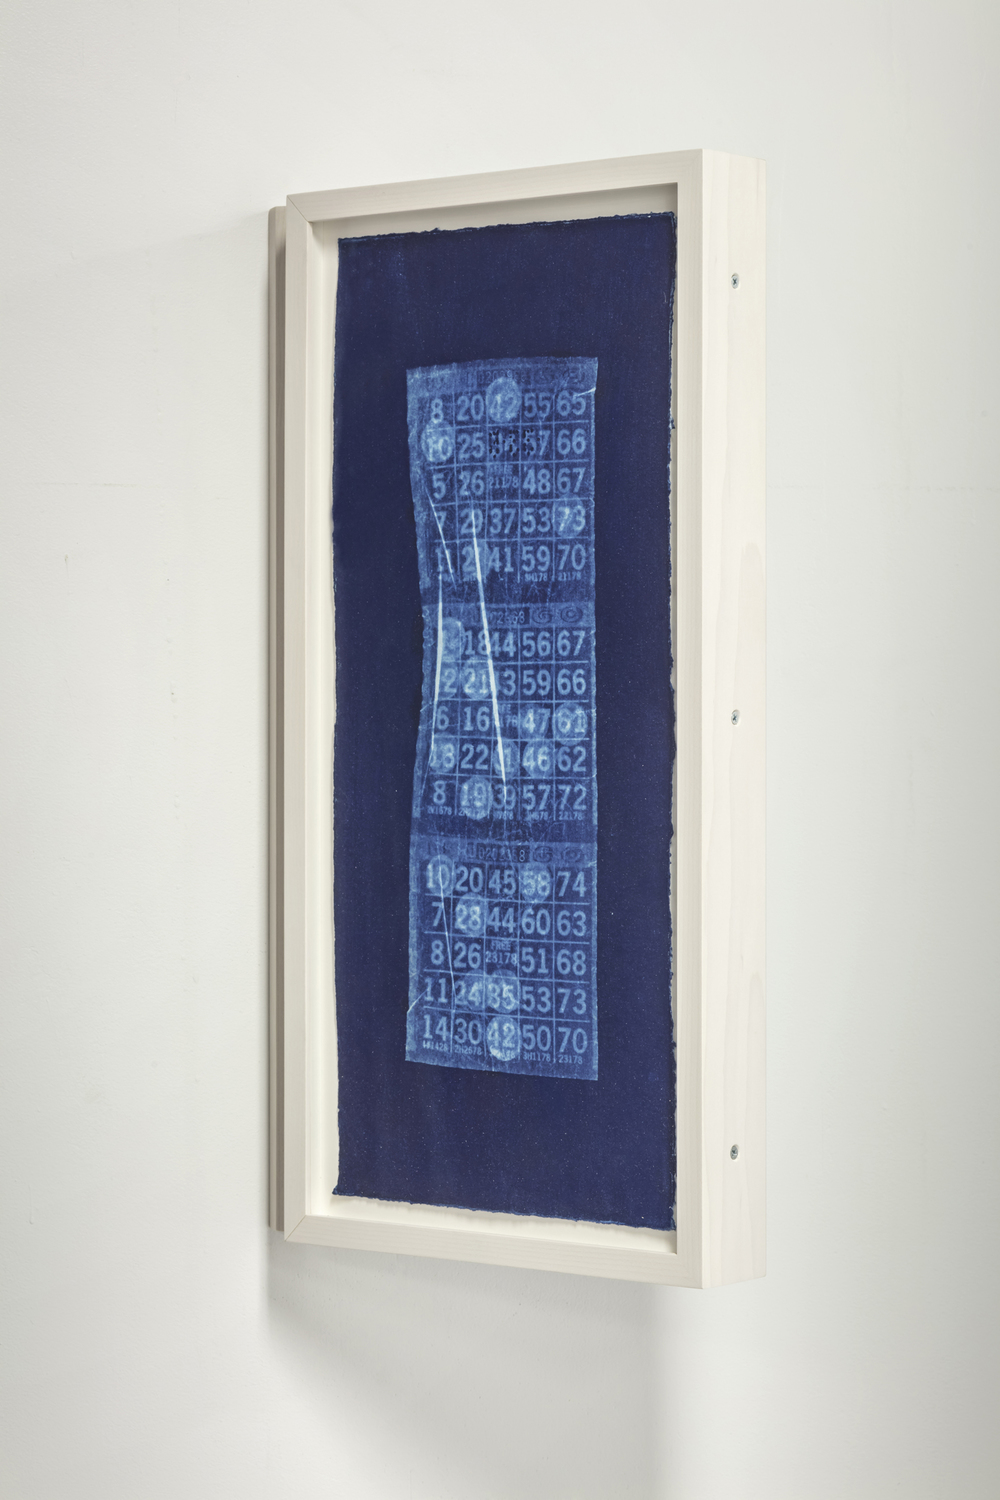 "Lili Huston-Herterich  At Dusk Wet Ink Follows The Man / At Dusk Dry Men Follow The Moons , 2015 Cyanotype diptych, 7.25"" x 16"" (print size) Signed edition of 10 diptych $675 framed plus HST"